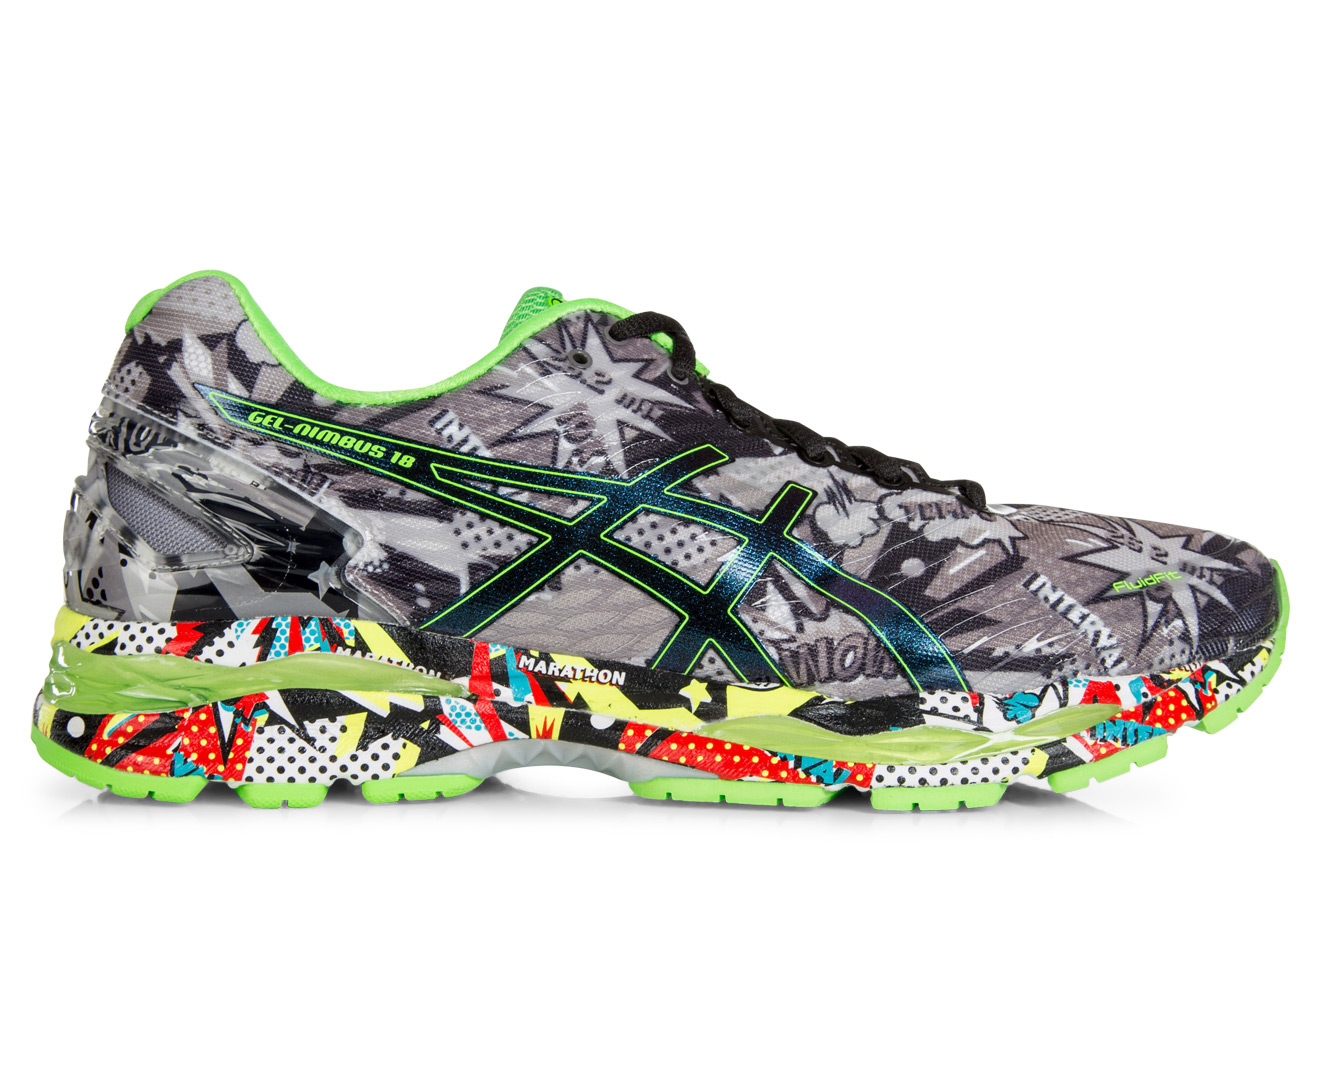 ASICS Men's GEL-Nimbus 18 Shoe - Carbon/Black/Green Gecko